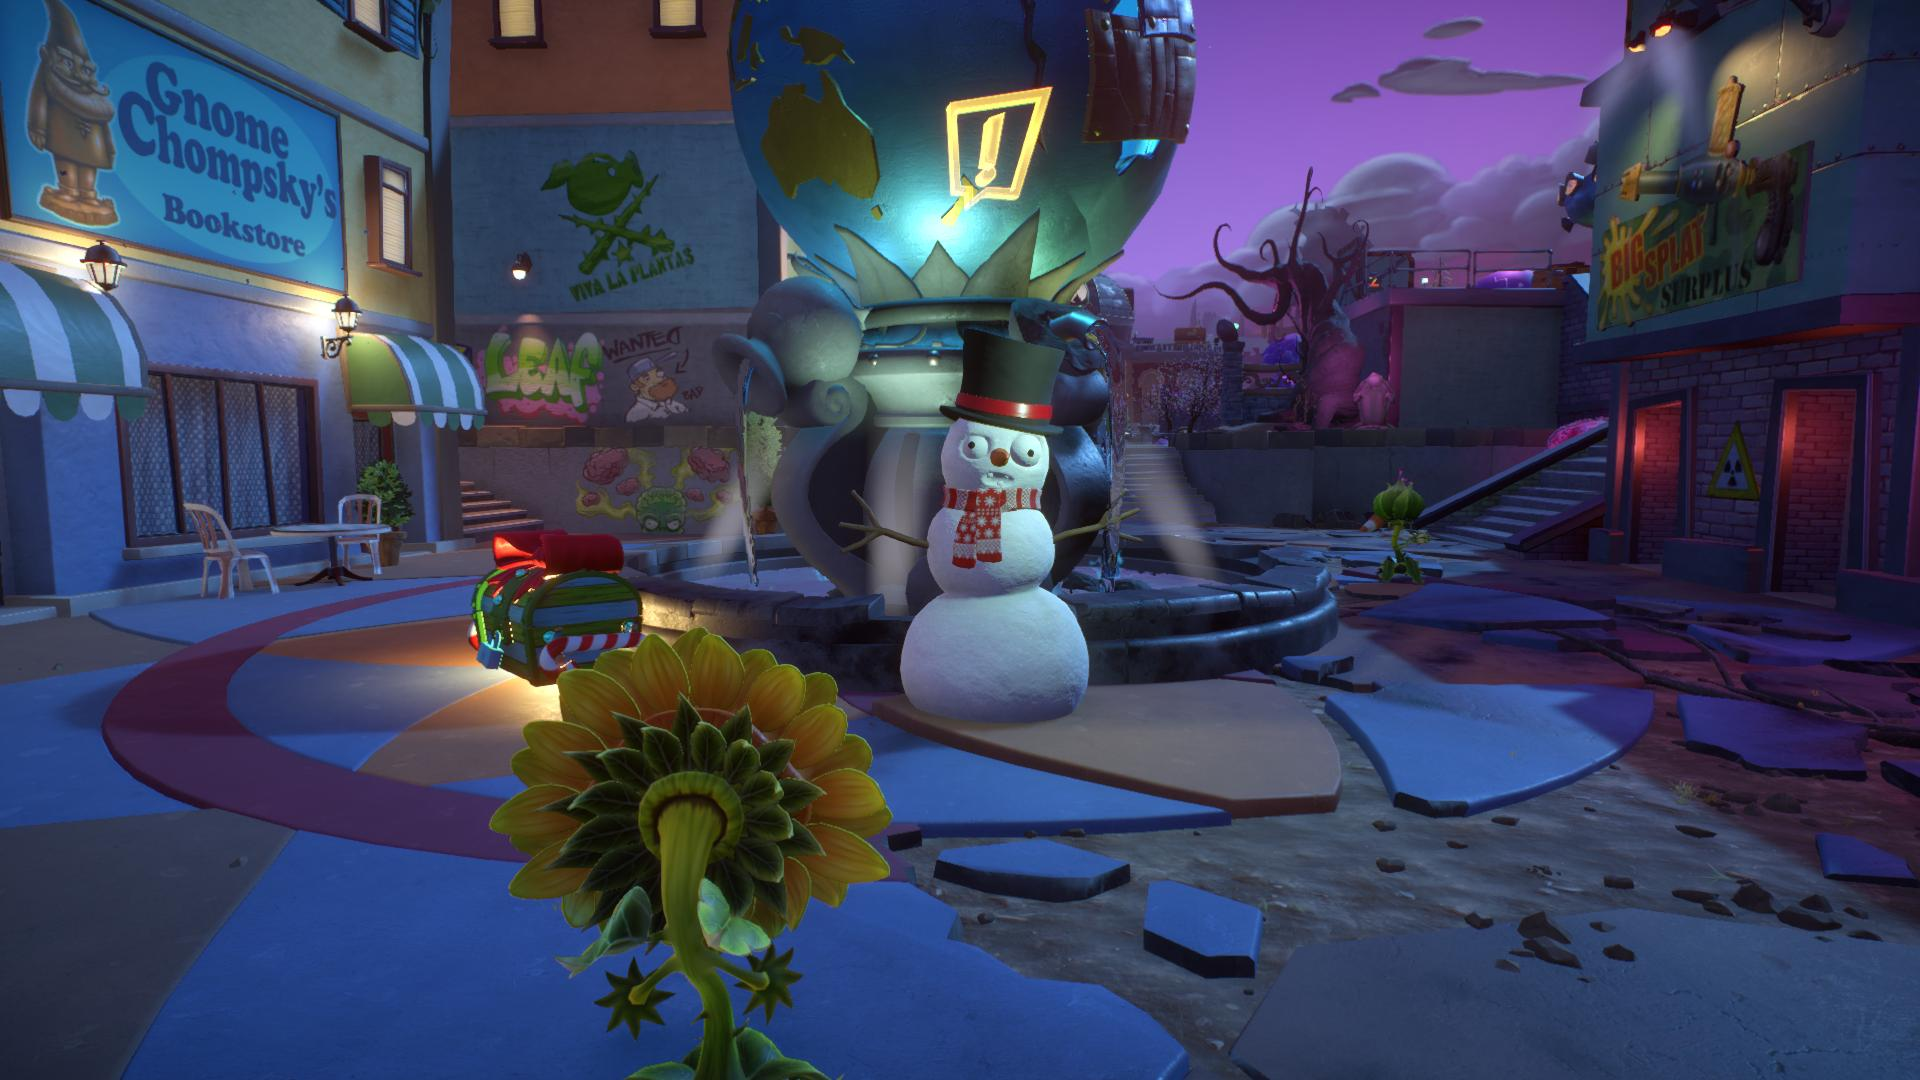 Get New Feastivus Customizations In Plants Vs. Zombies Garden Warfare 2